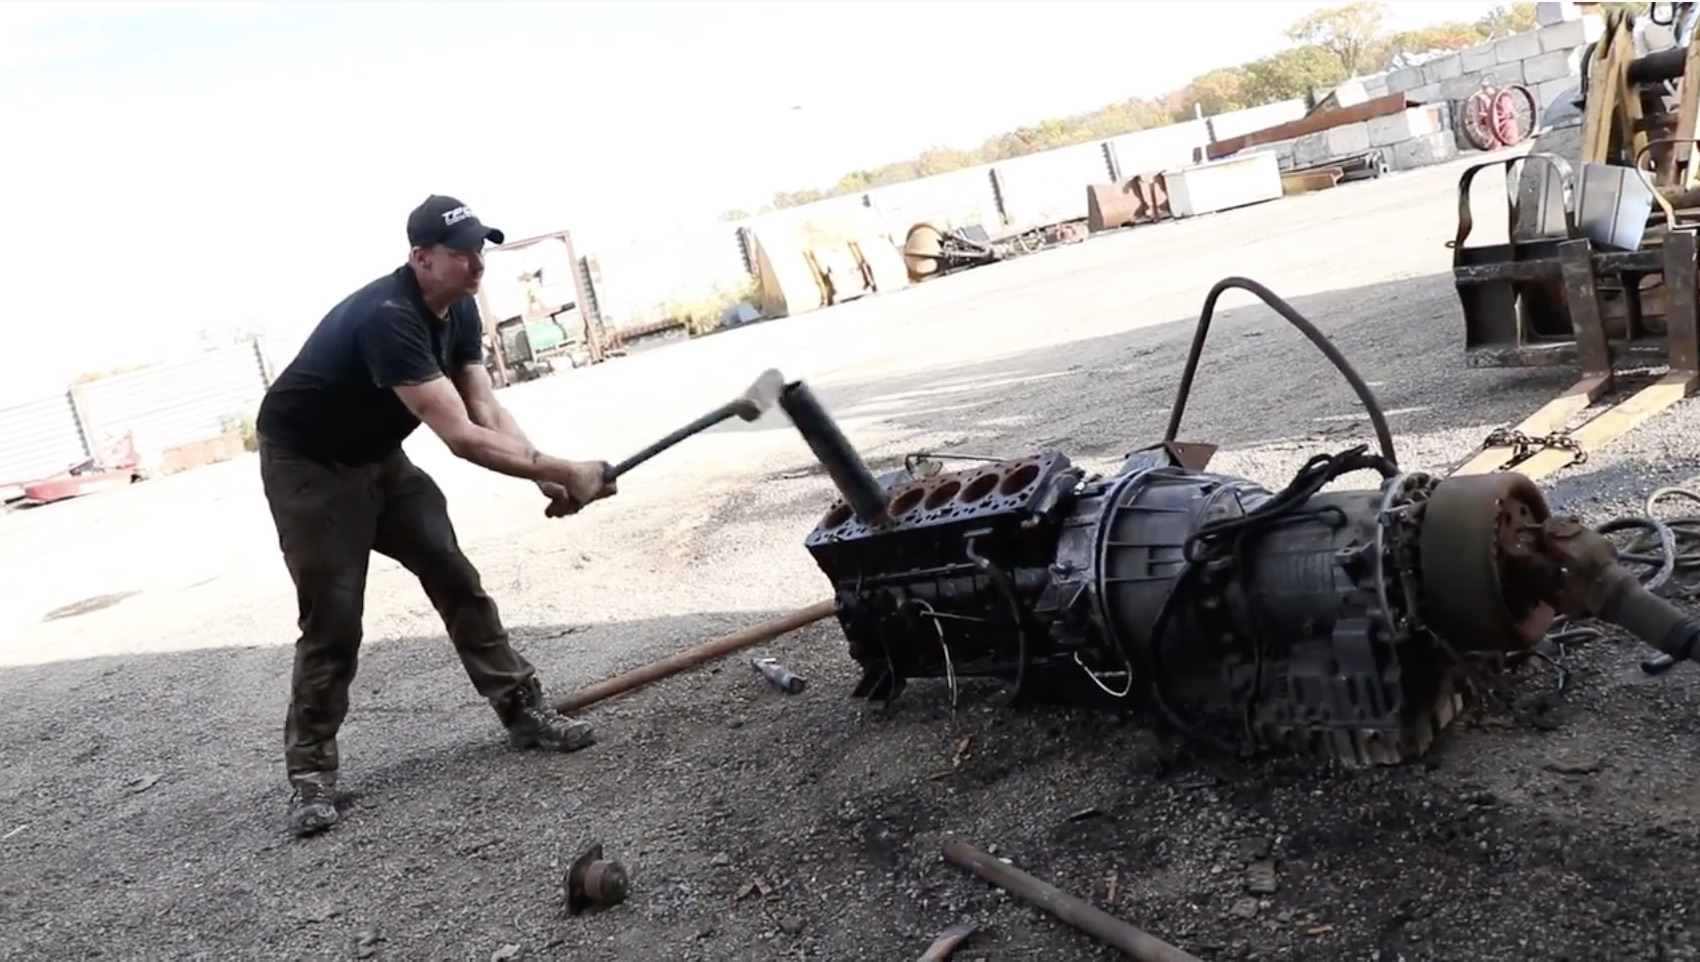 Cummins Into A Komatsu, Part 2: Getting The Dodge-Swapped Bulldozer Up And Going